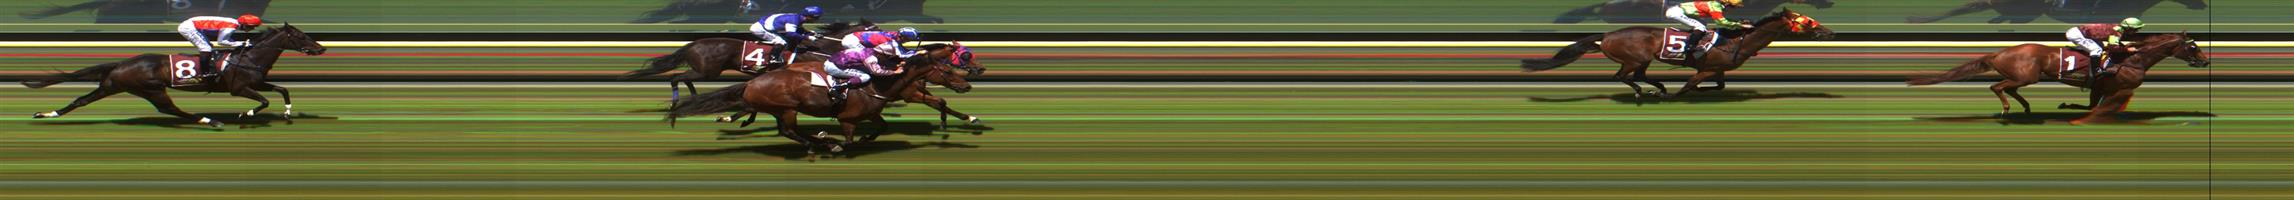 Burrumbeet Race 4 No.3 Star Zone @ $8 (0.72 UNIT WIN) - right on price. watch.   Result:  Non Qualifier – Unplaced at SP $8.50